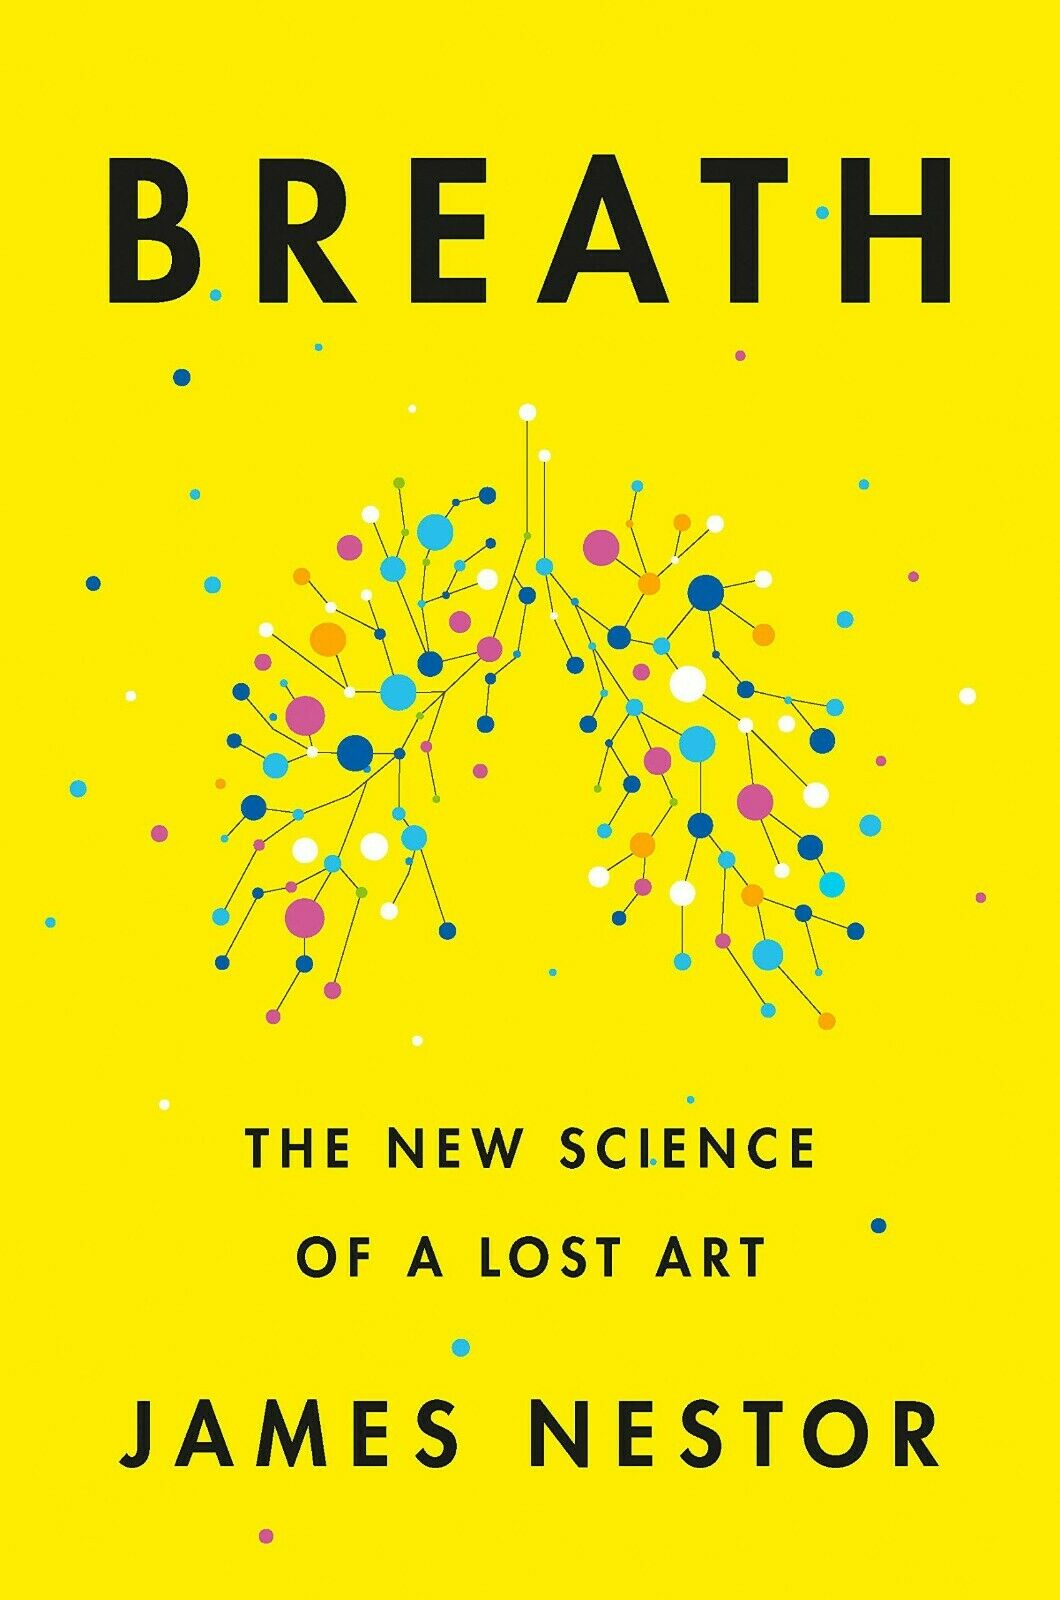 Breath: The New Science of a Lost Art by James Nestor 2020 2